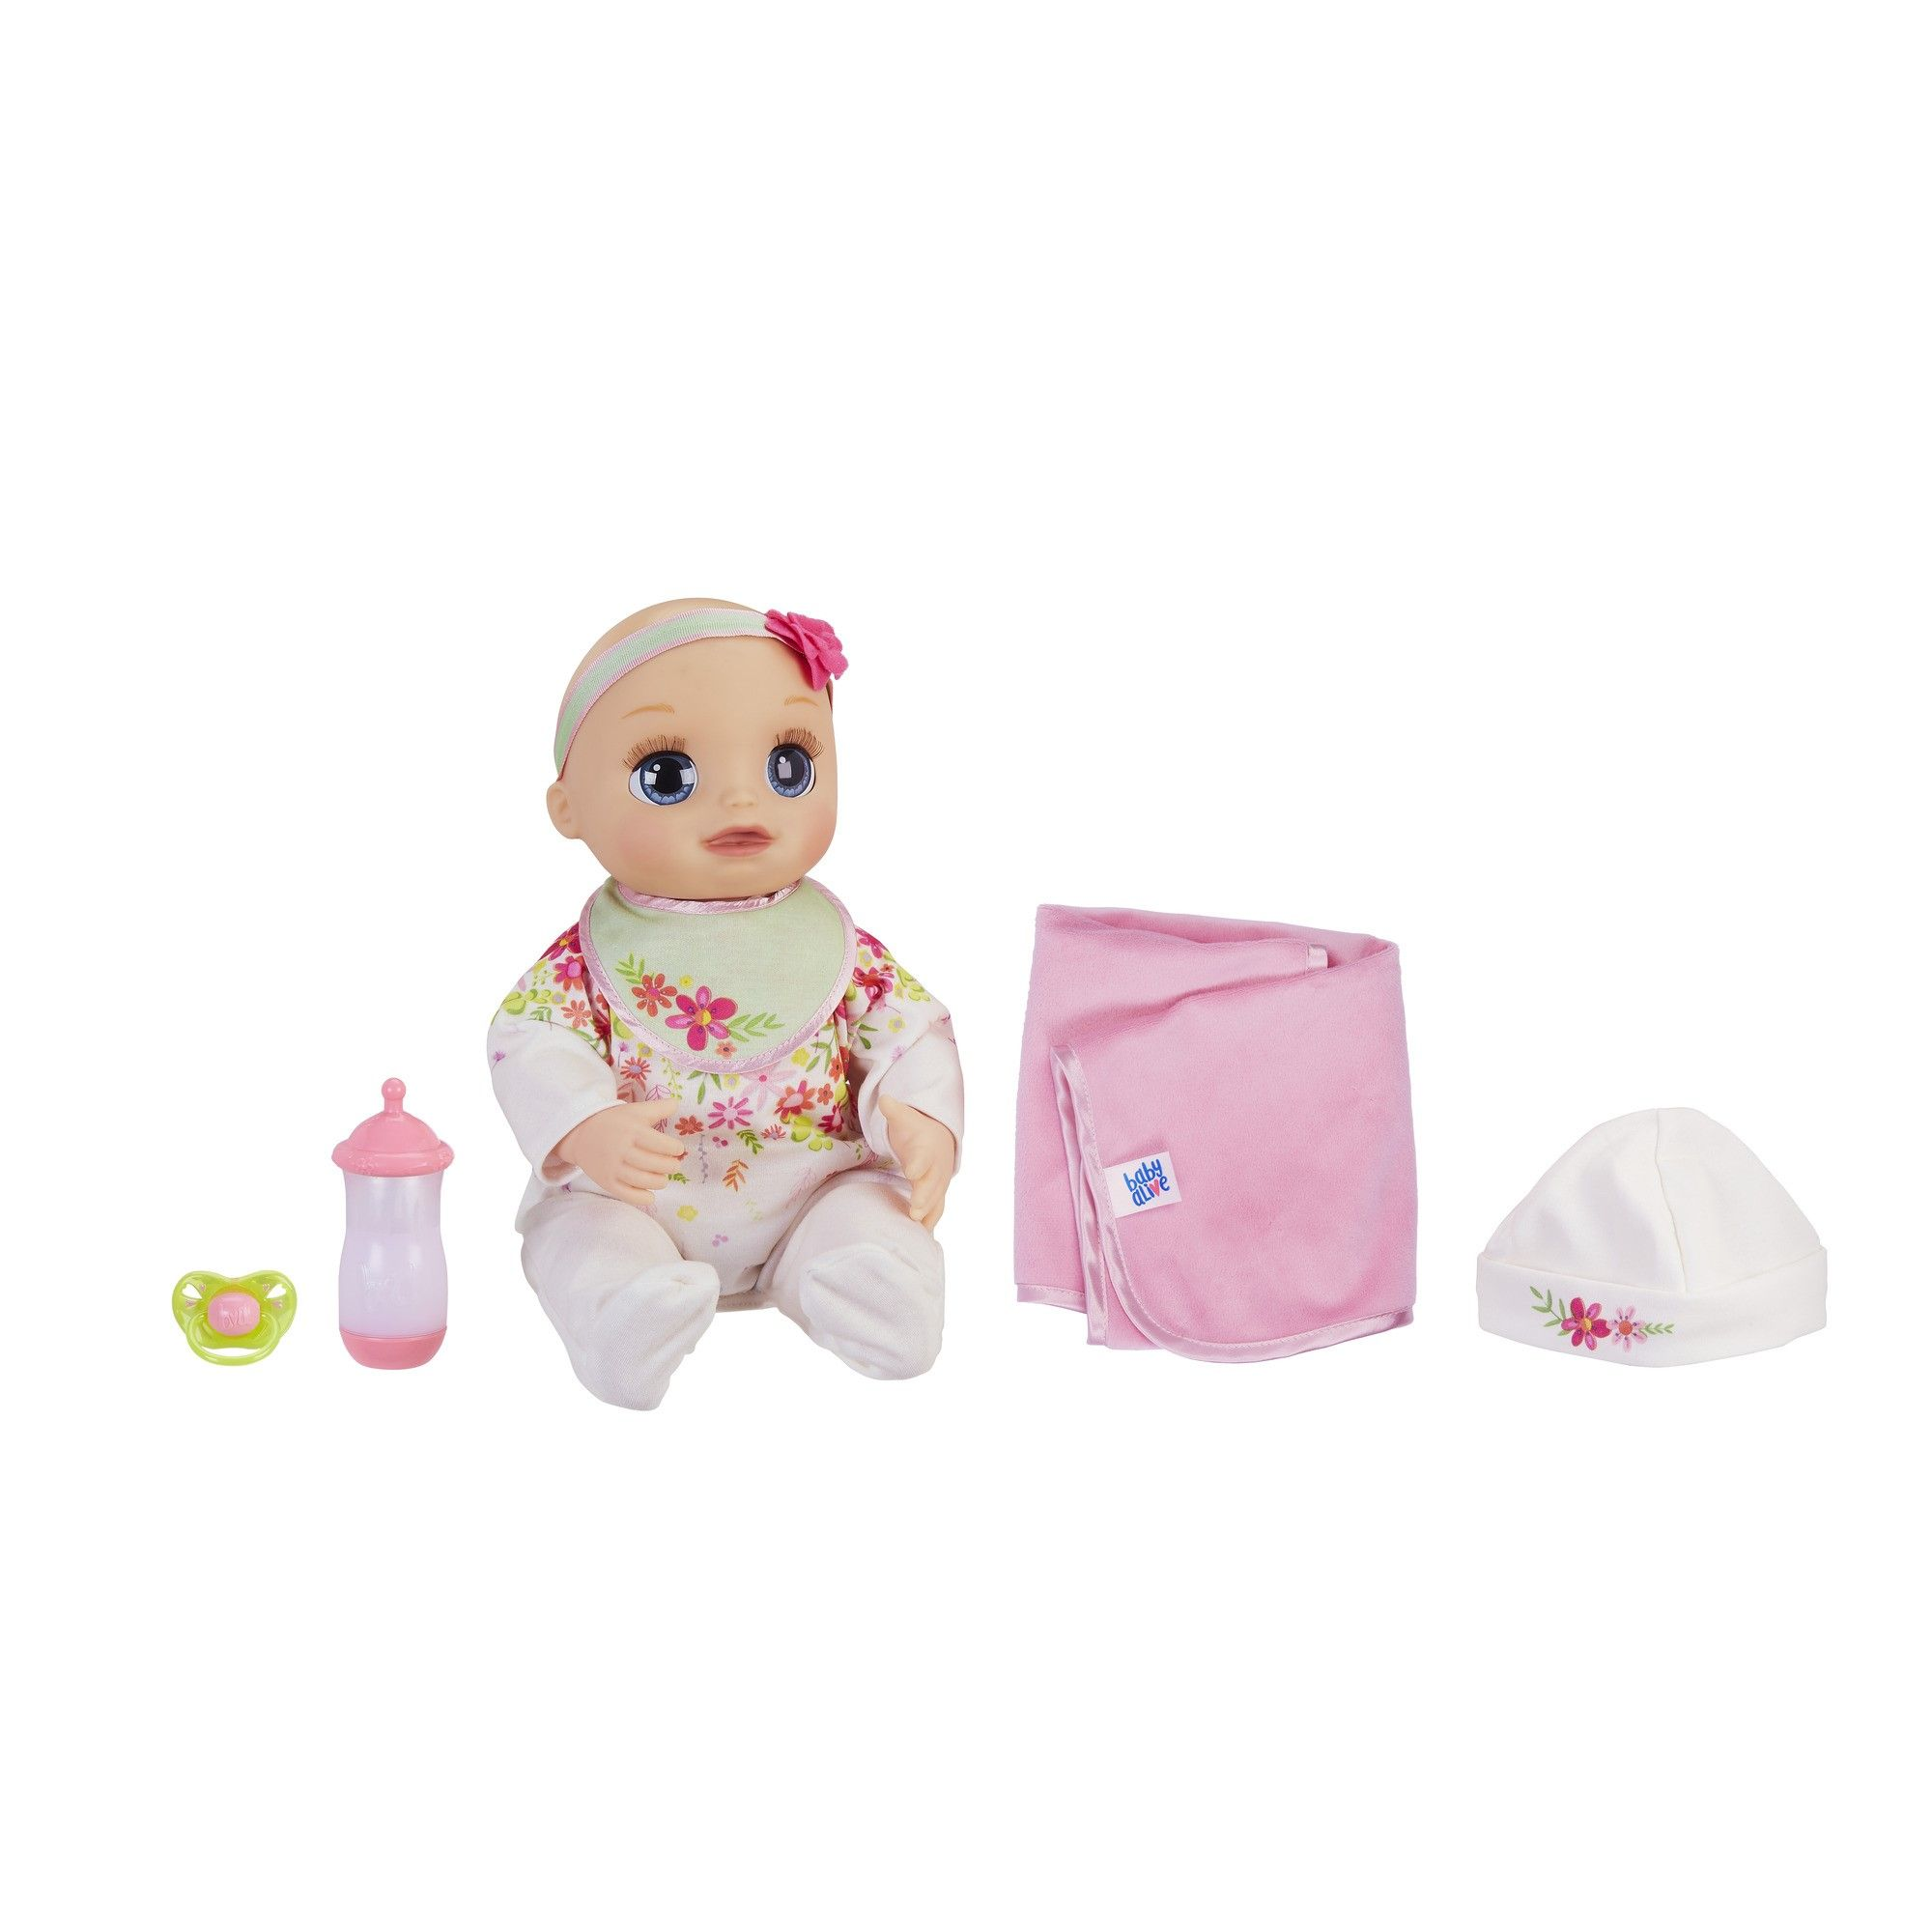 Baby Alive Real As Can Be Baby 80 Lifelike Expressions Walmart Inventory Checker Brickseek 19 00 80 O Baby Alive Baby Alive Dolls Realistic Baby Dolls